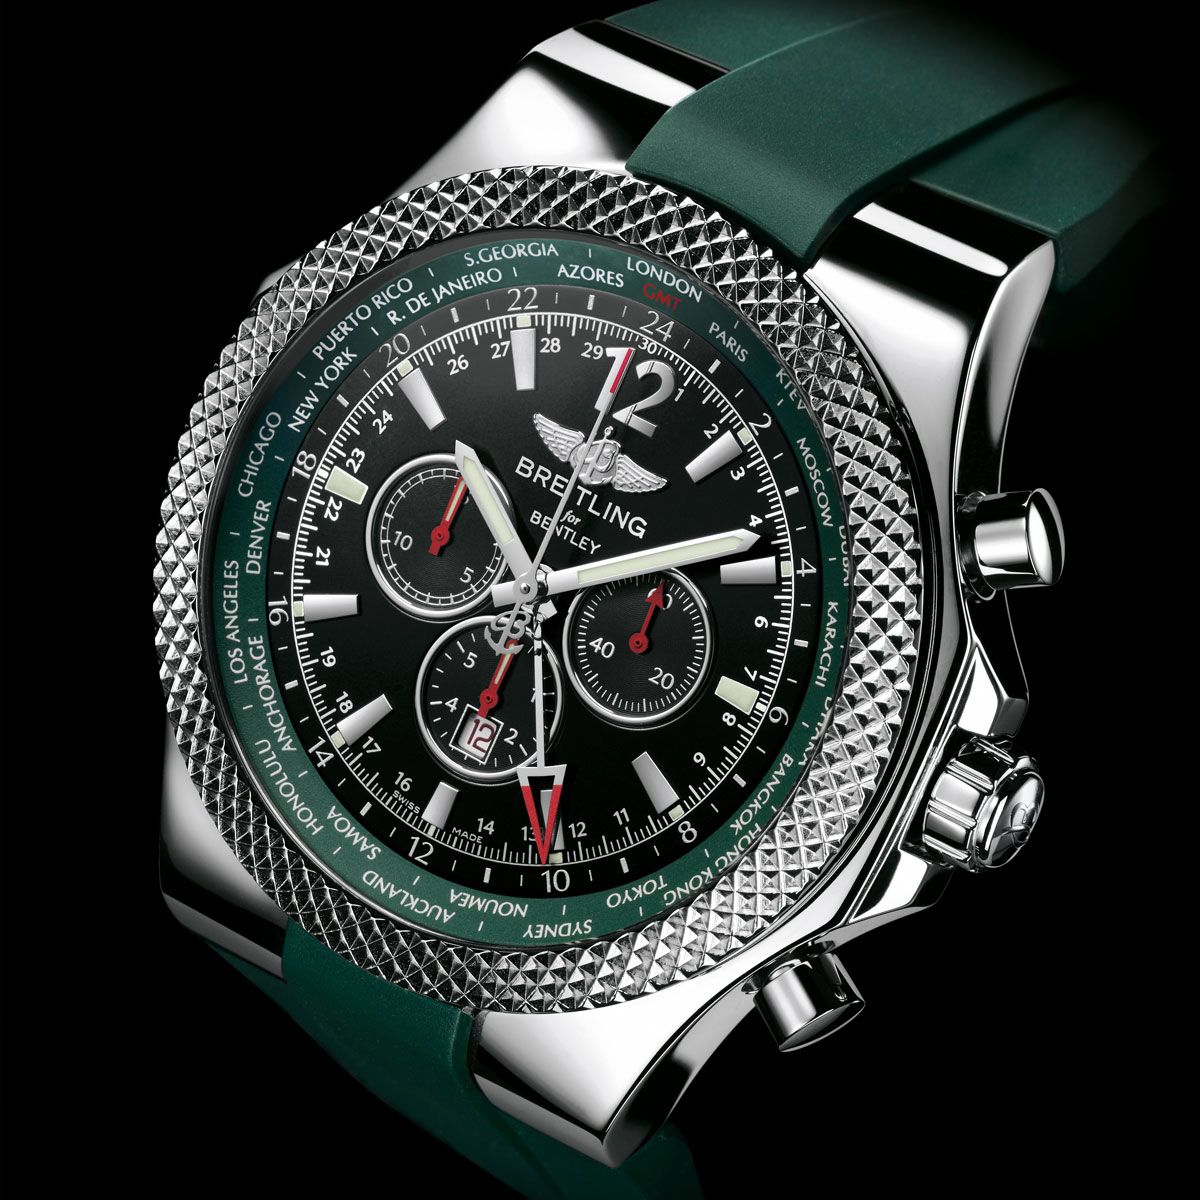 the watch quote photo breitling bentley gmt chronograph the watch quote photo breitling bentley gmt chronograph